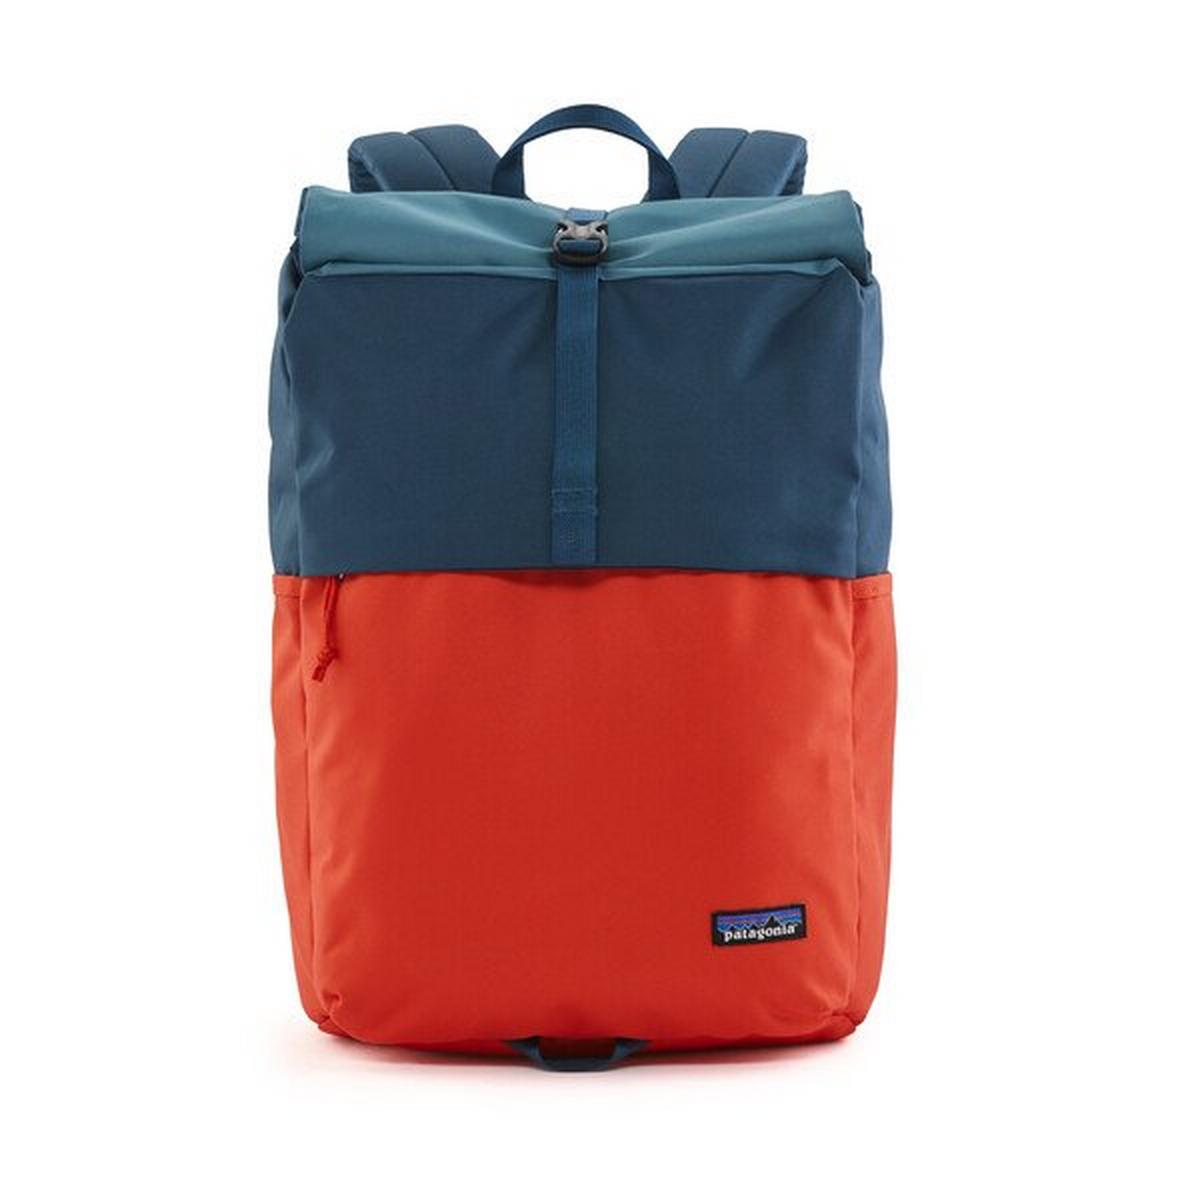 Patagonia Arbor Roll Top Pack 30L - Patchwork Paint Red